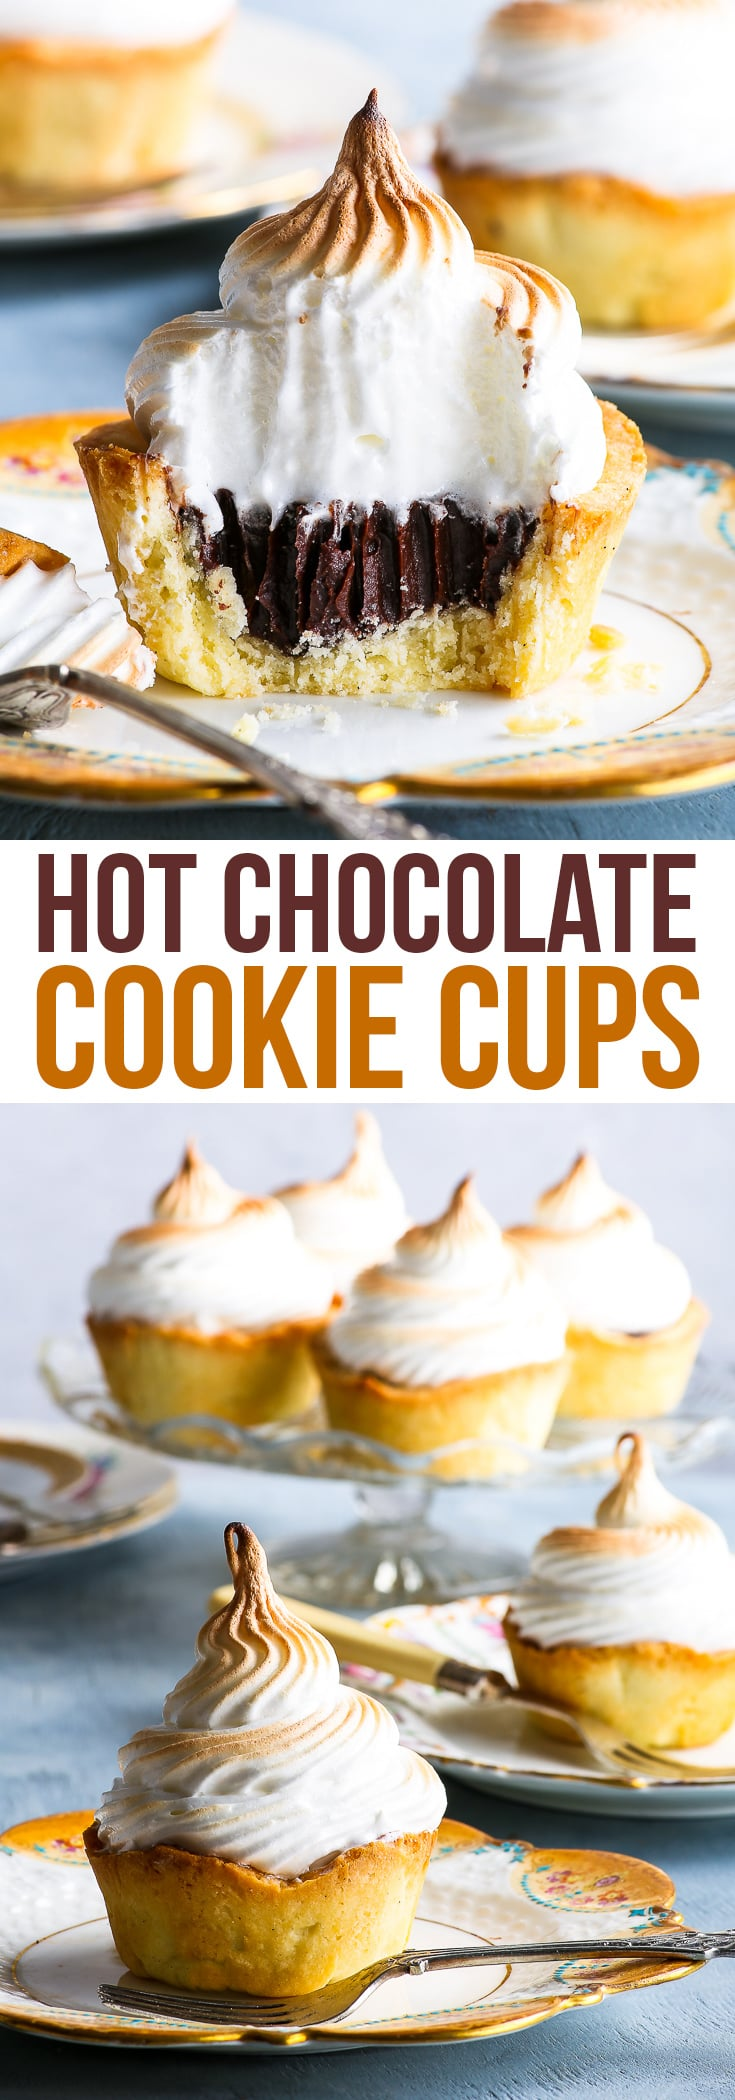 Gluten Free Hot Chocolate Cookie Cups - These hot chocolate cookie cups are easy to make and guaranteed to impress. The buttery, slightly crumbly gluten free cookie cups are complemented perfectly by the rich, decadent chocolate ganache and the sweet, fluffy marshmallow swiss meringue. The perfect gluten free dessert! #cookiecups #chocolate #meringue #dessert #glutenfree